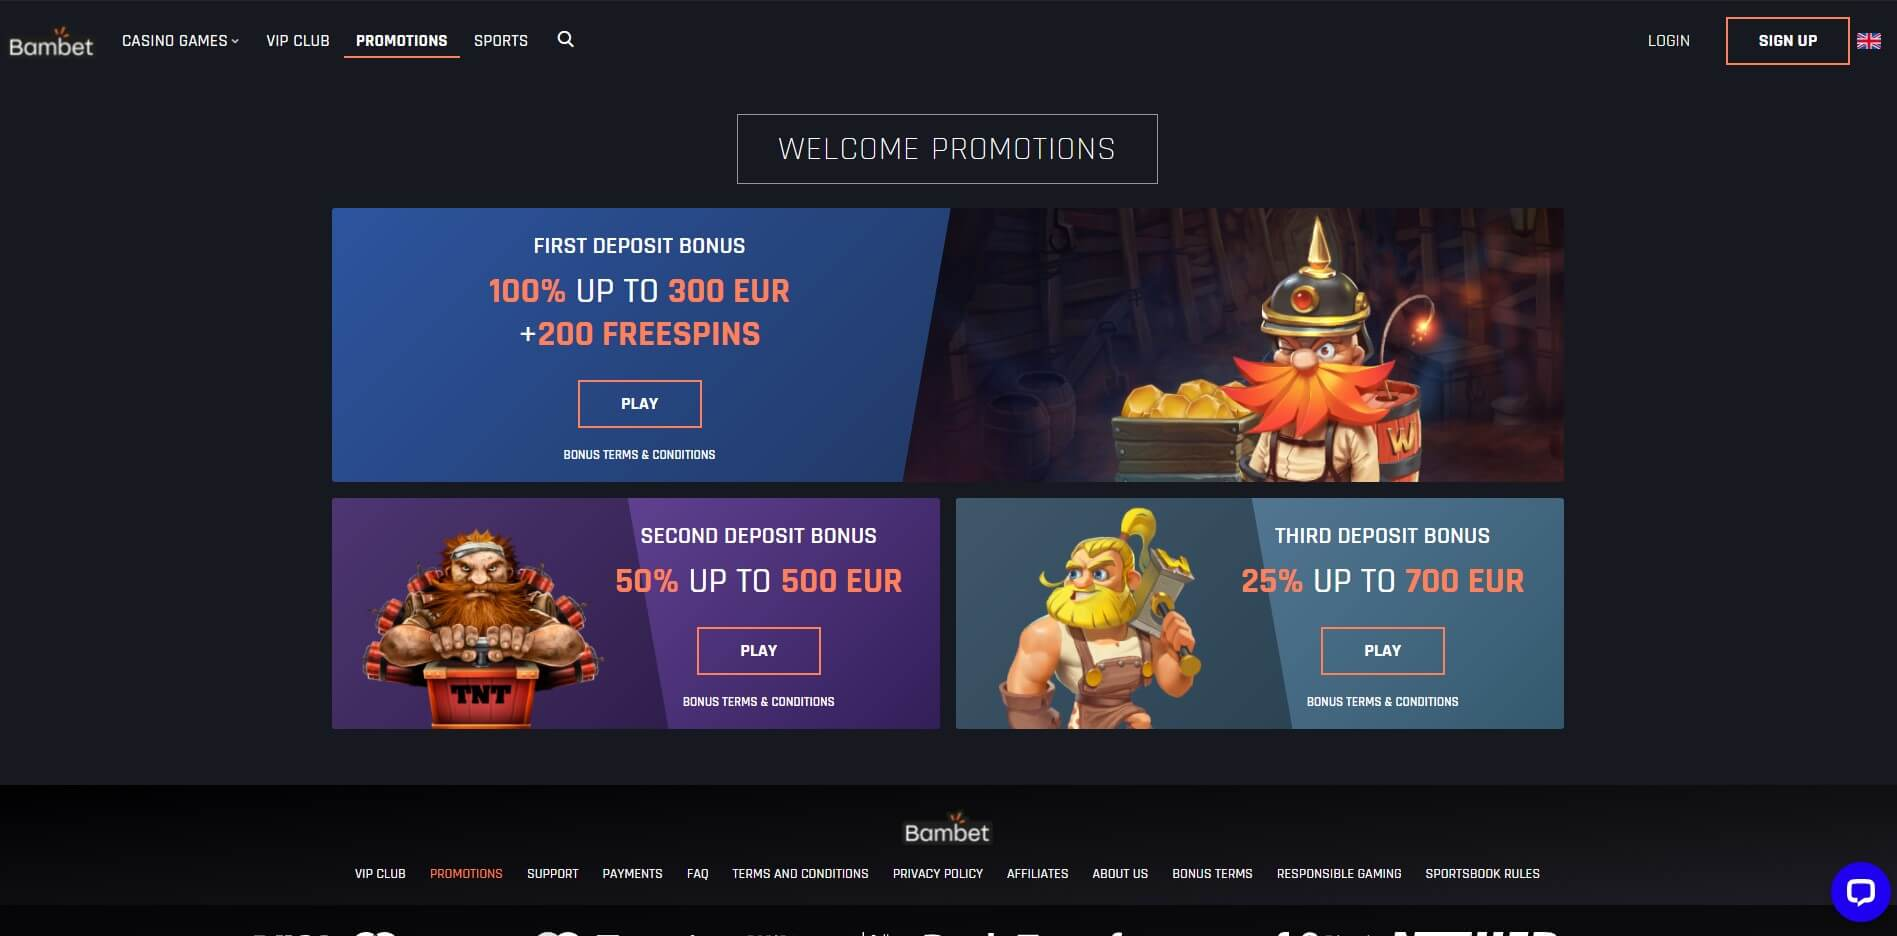 Promotions at Bambet Casino